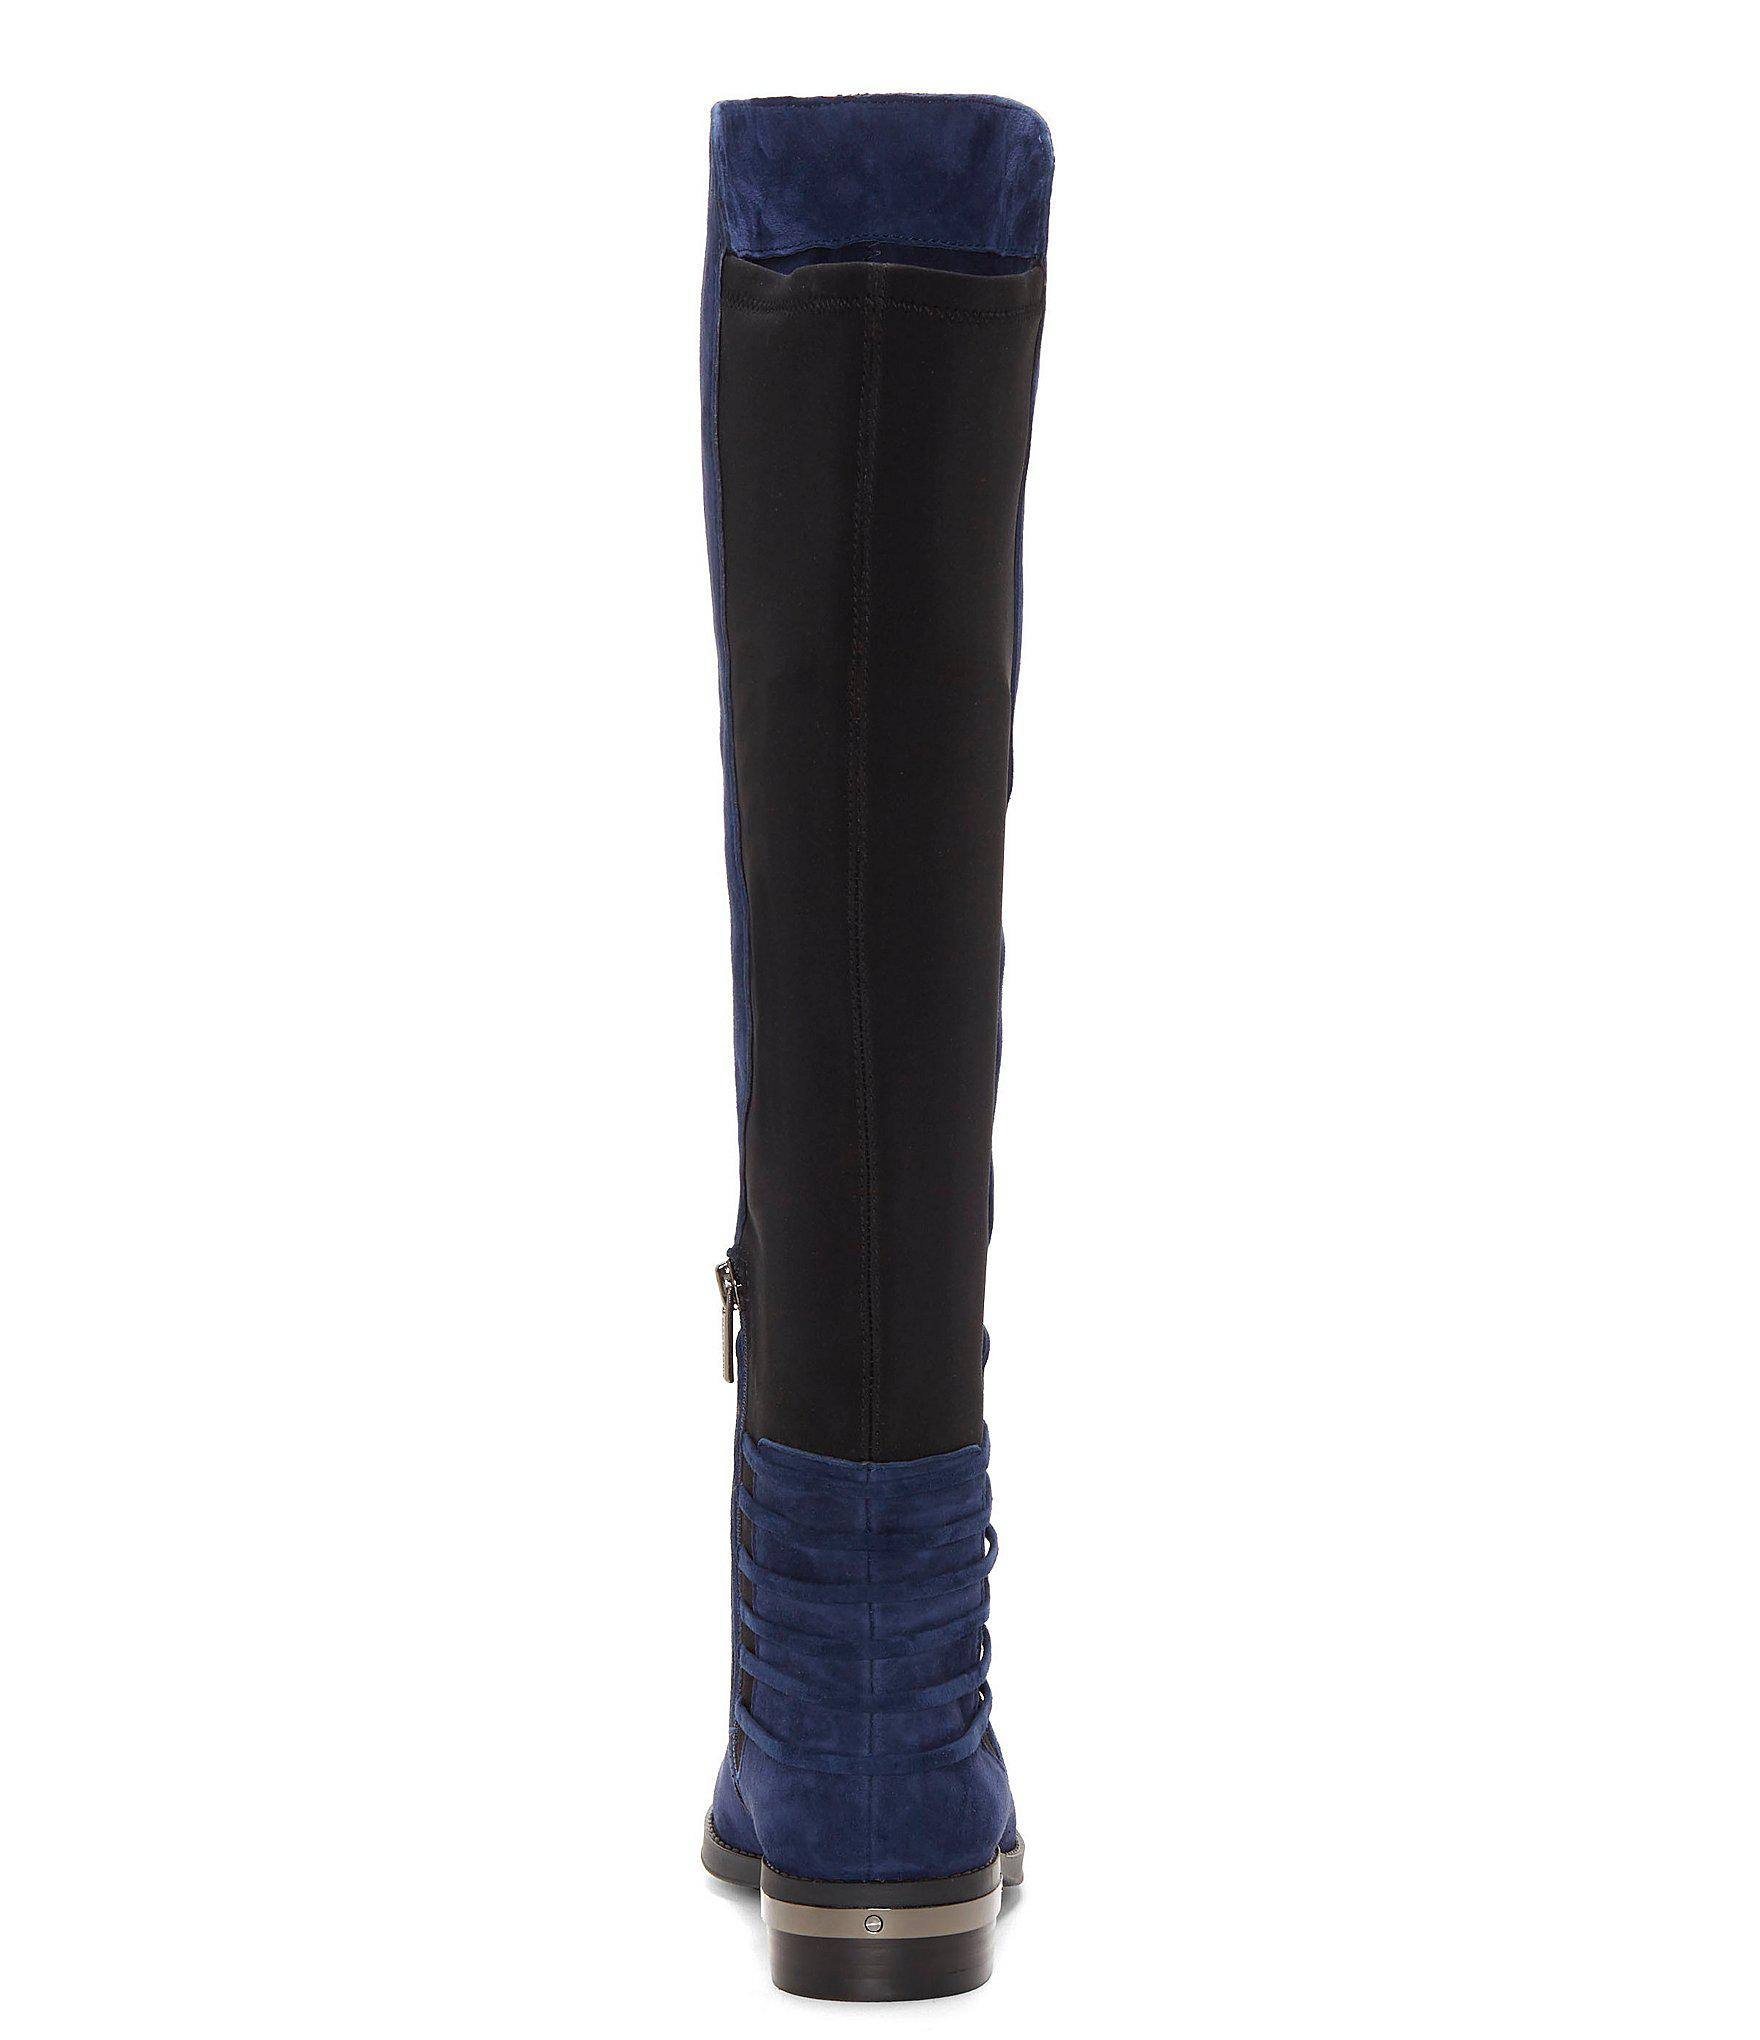 29cfe7204cd Lyst - Vince Camuto Payge Suede Over The Knee Riding Boots in Blue